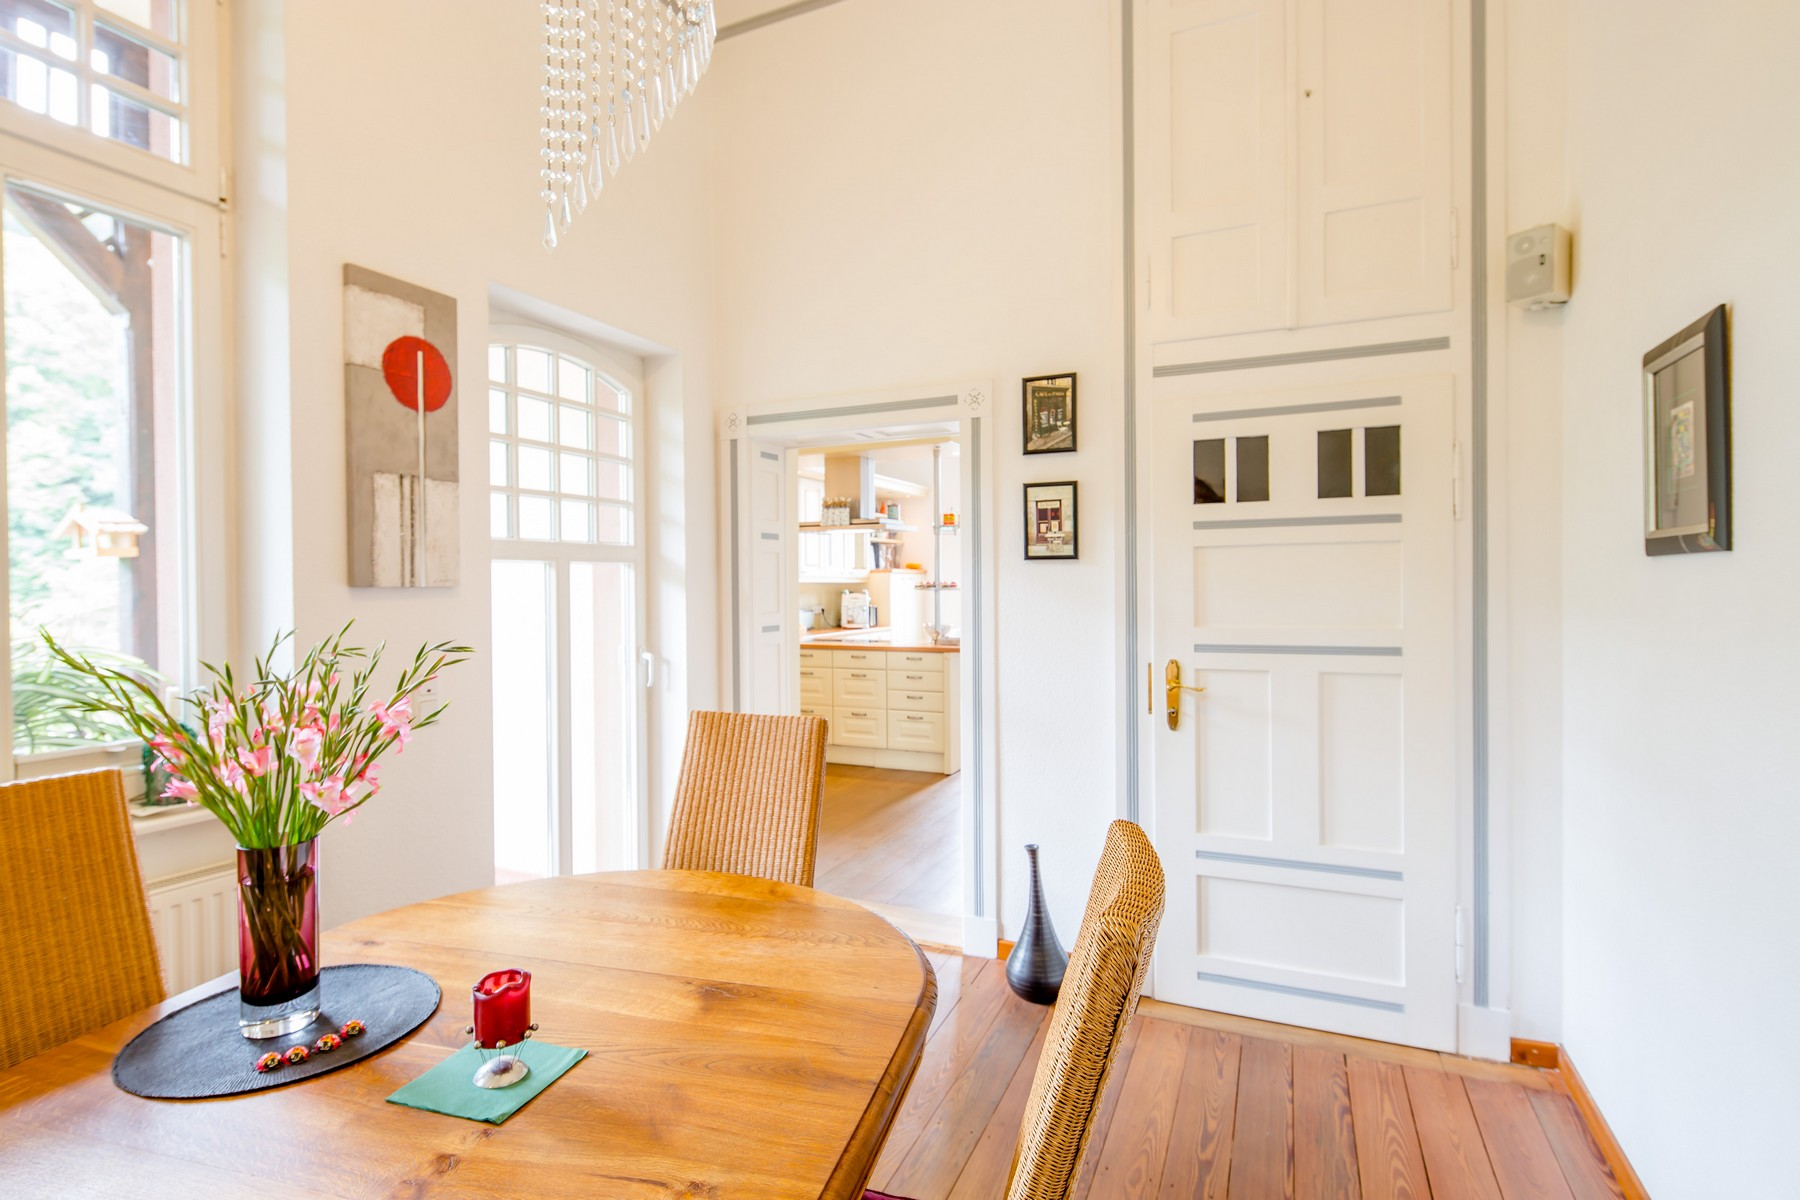 Apartment for Sale at Schlangenbad: 1. floor unit in stately old building at the Park Other Hessen, Hessen, 65388 Germany